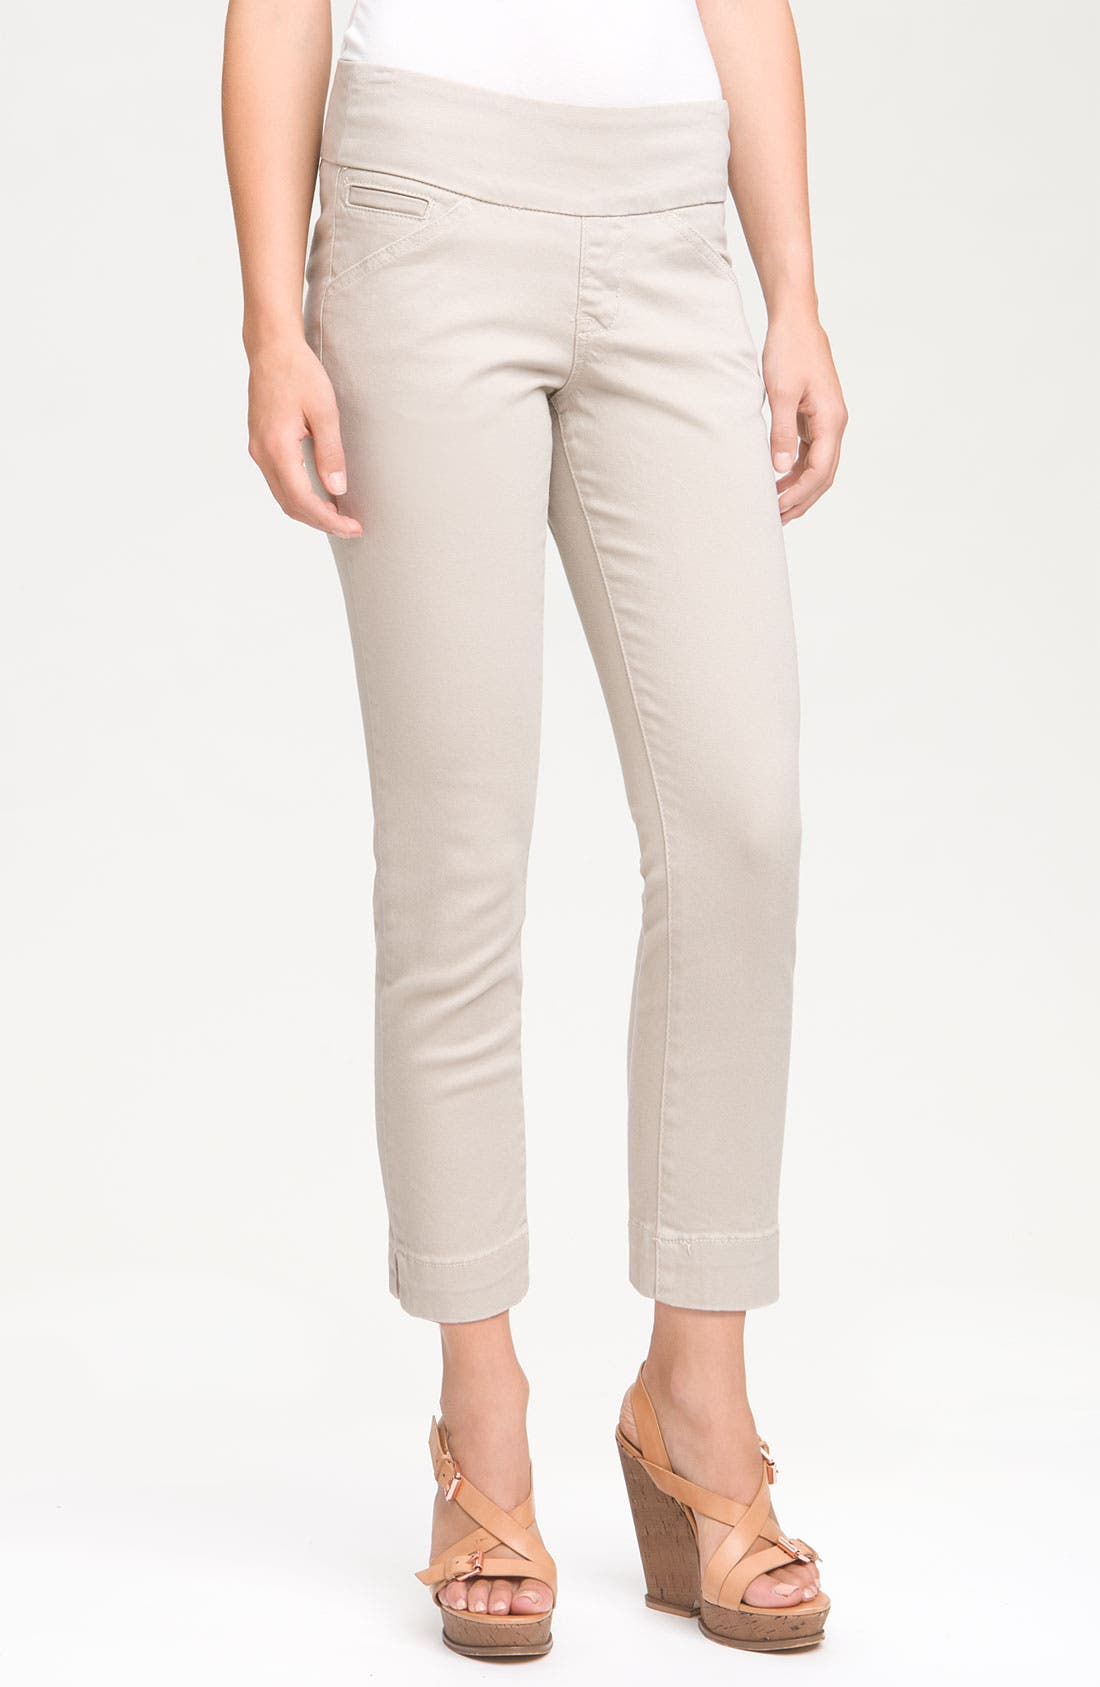 Alternate Image 1 Selected - Jag Jeans 'Attie' Slim Ankle Jeans (Petite)